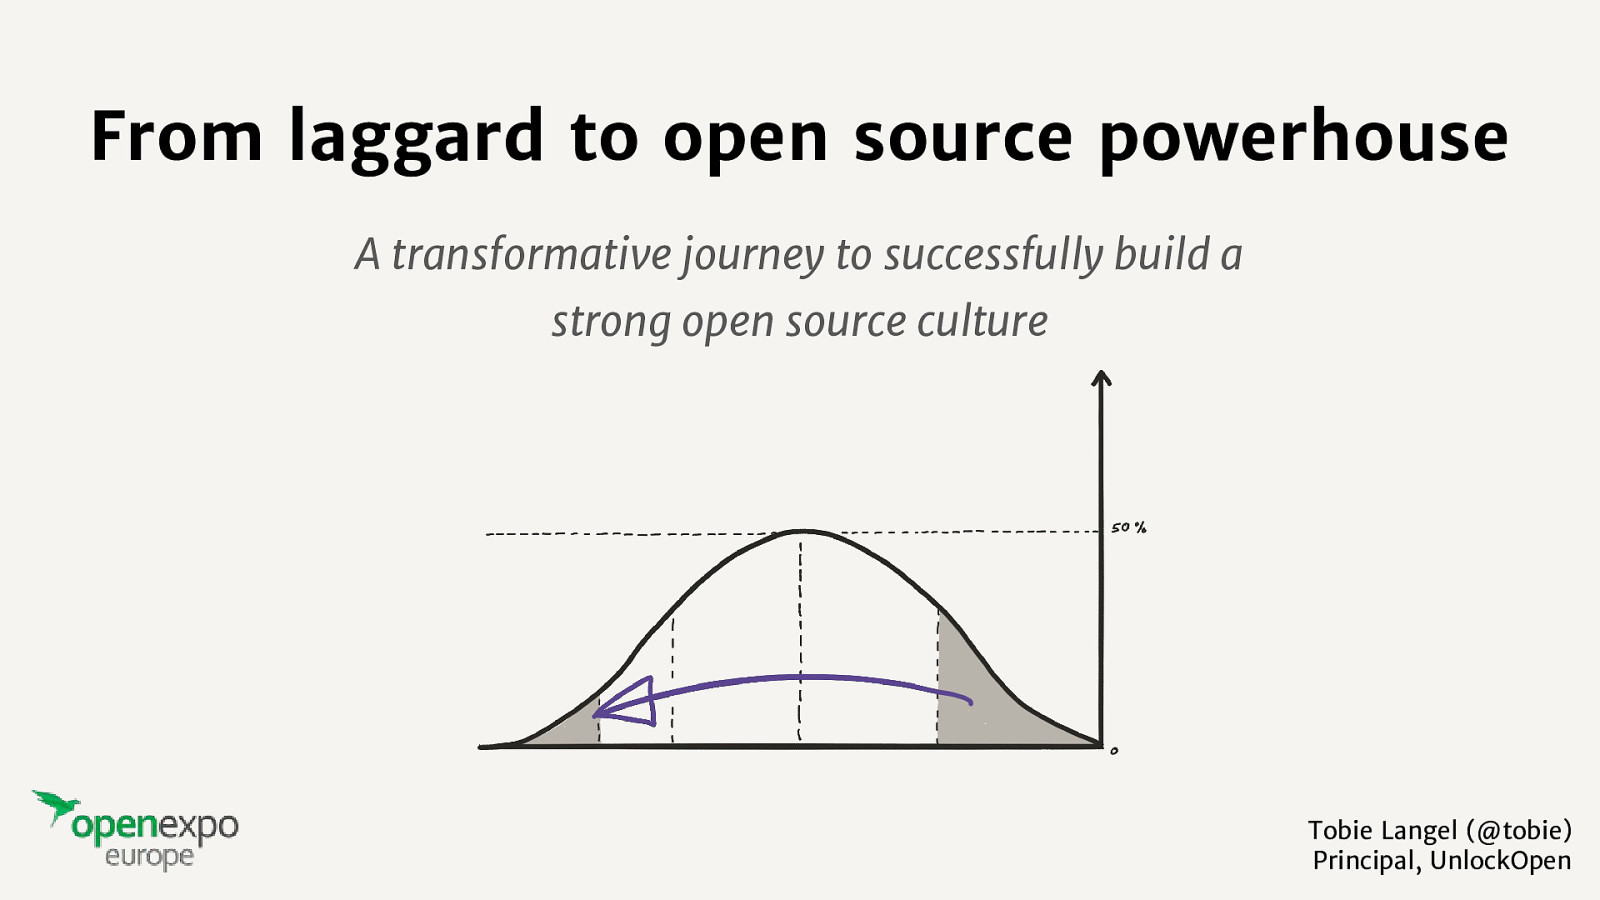 From laggard to open source power house